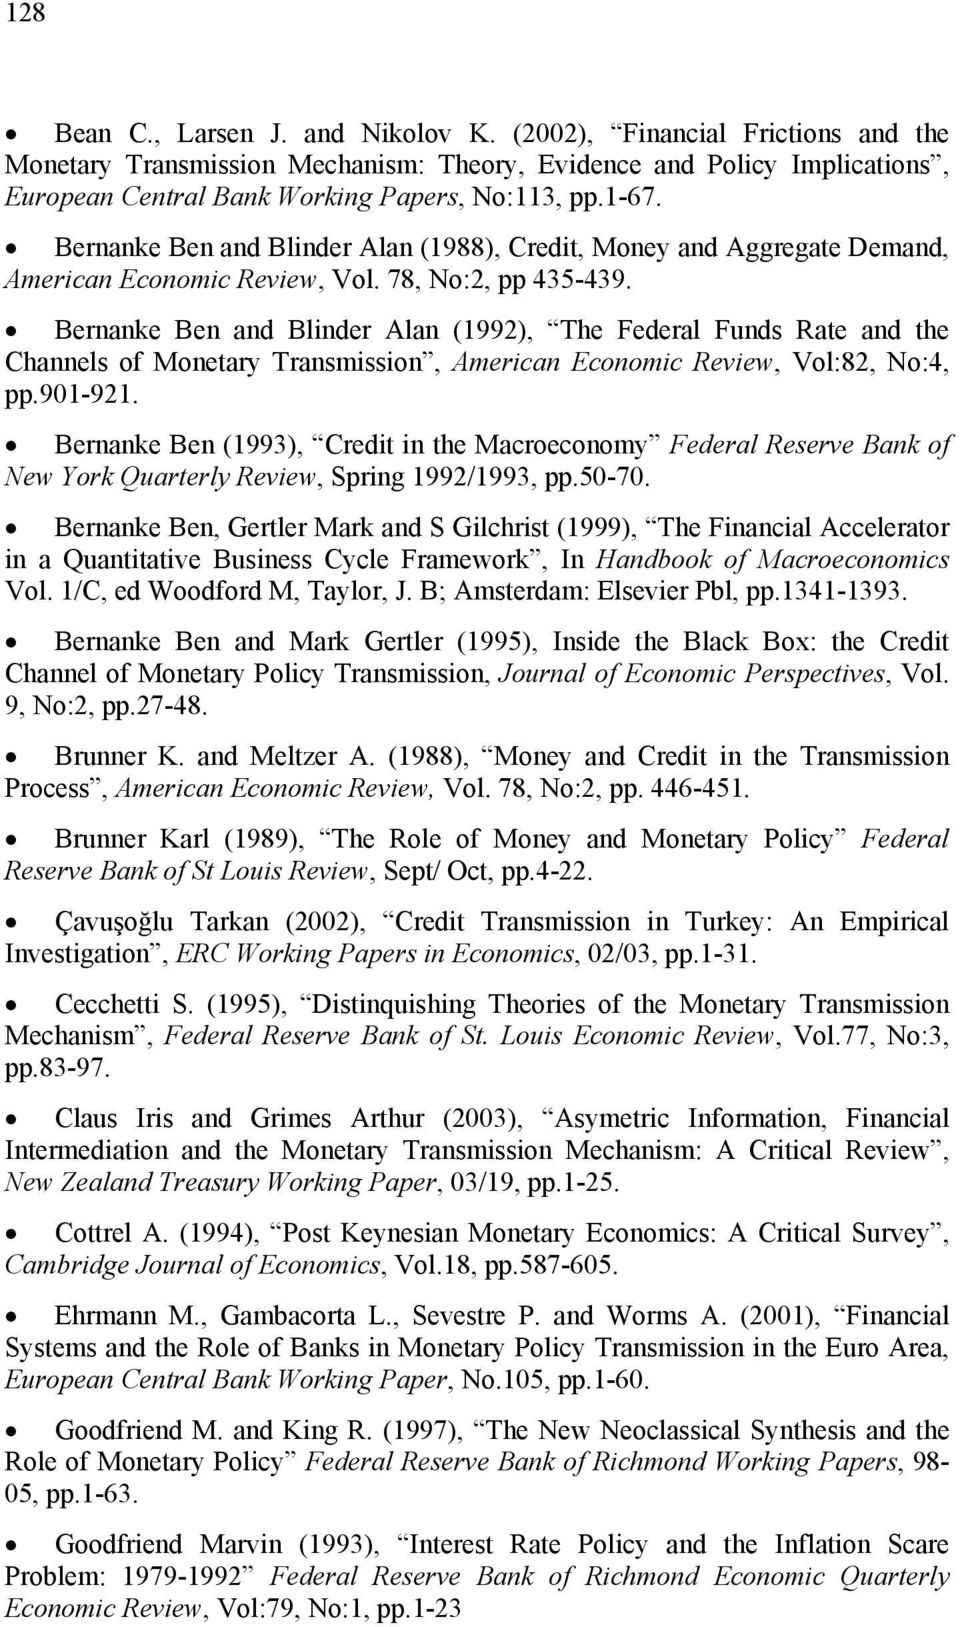 Bernanke Ben and Blinder Alan (1992), The Federal Funds Rate and the Channels of Monetary Transmission, American Economic Review, Vol:82, No:4, pp.901-921.